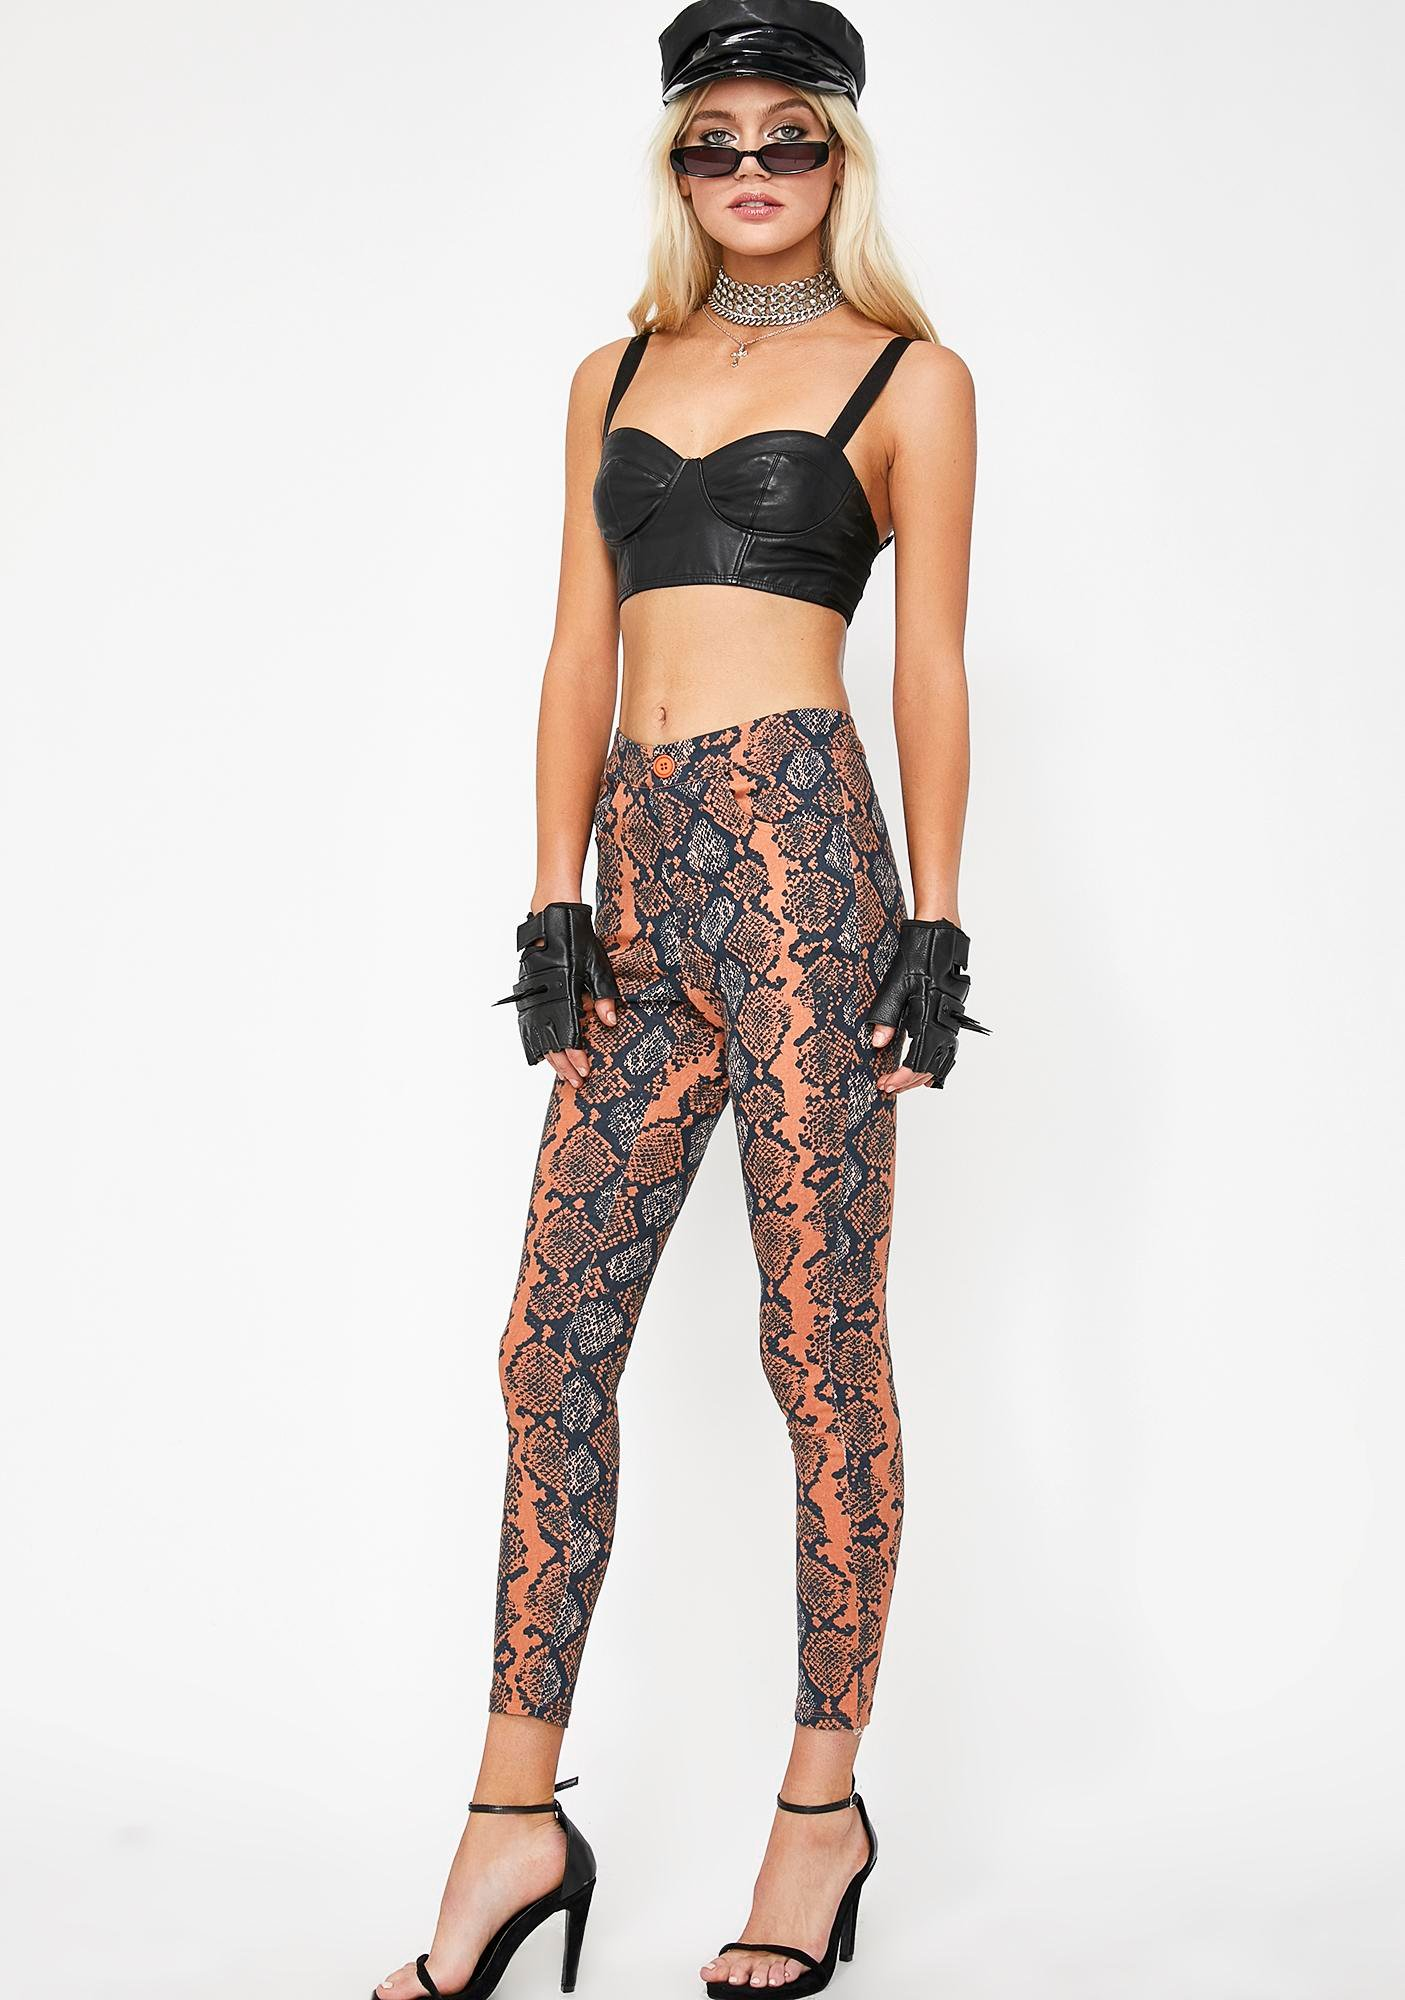 Toxin Fever Skinny Pants